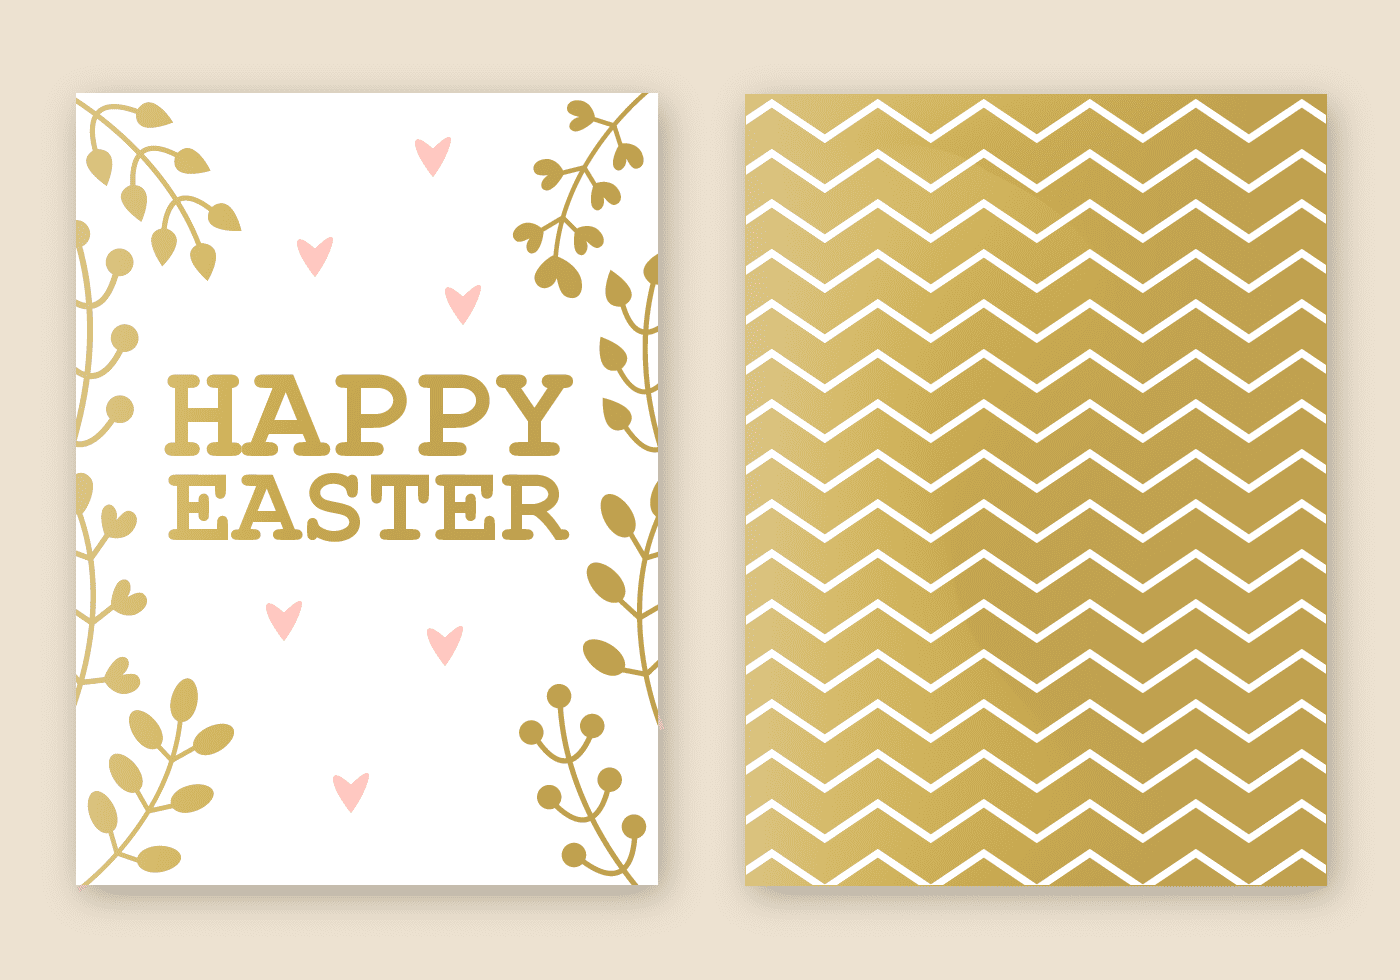 220 Best Easter Graphics in 2020: Free & Premium - free easter card vector 1